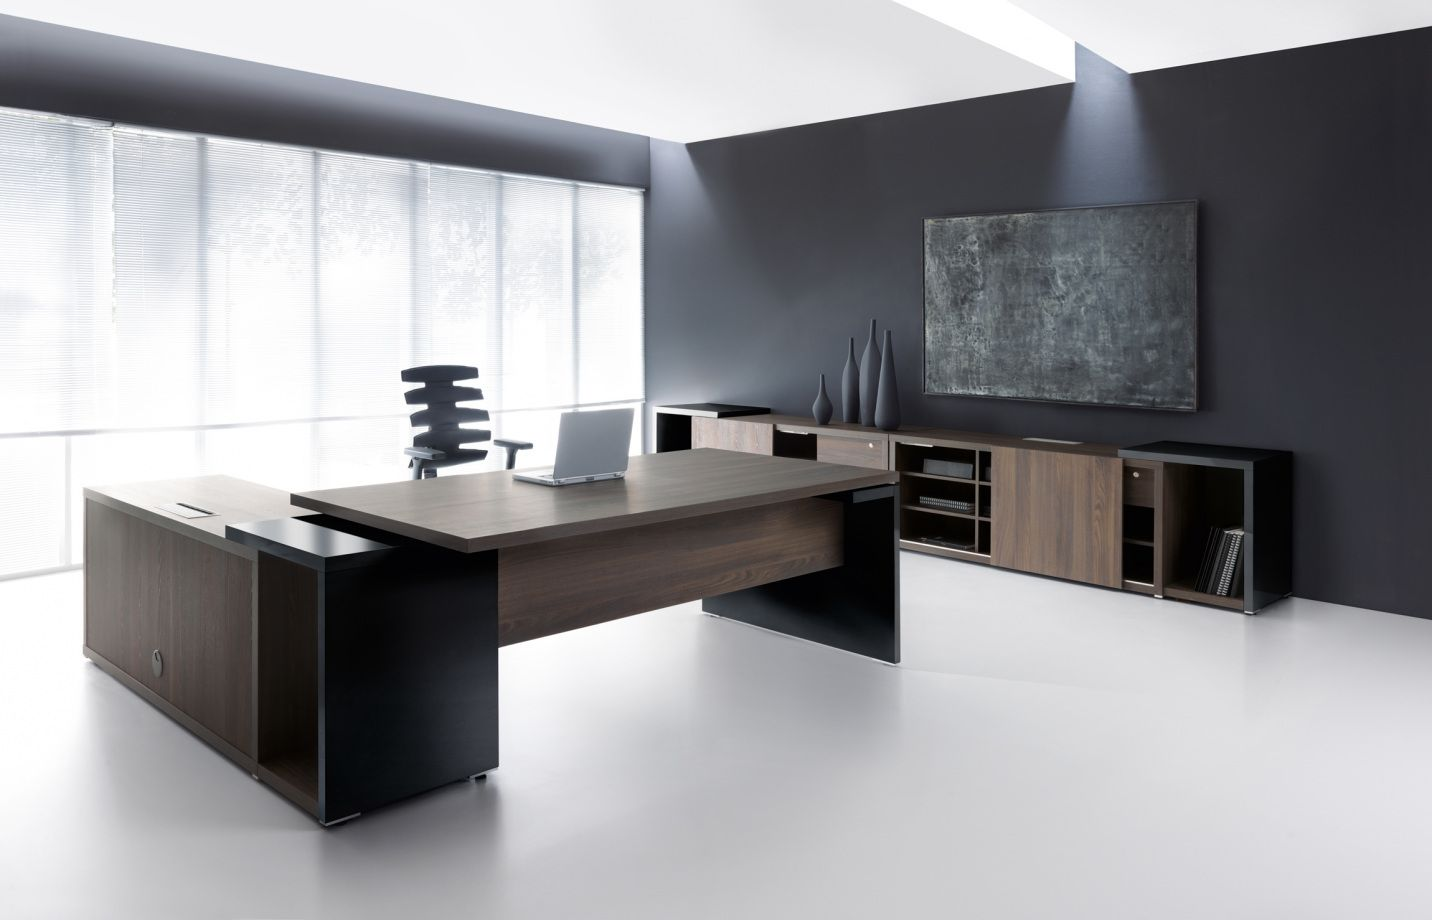 Executive Desk Modern Home Office Furniture Sets Check More At Http Michael Malarkey Com Executive Office Furniture Modern Office Design Modern Office Desk